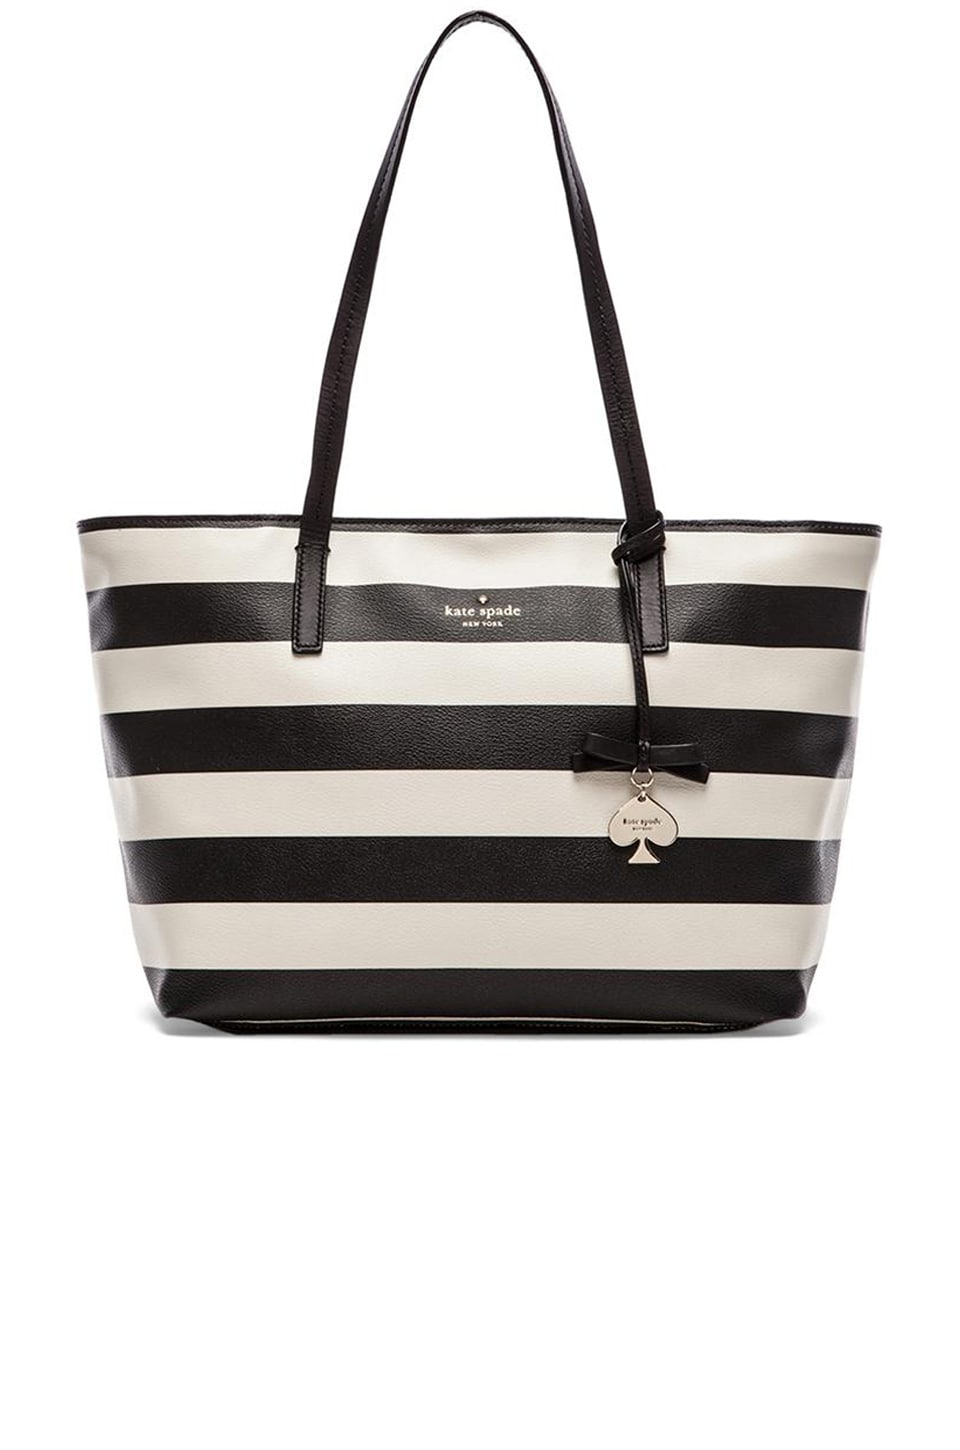 kate spade new york Ryan Tote in Deco Beige & Black